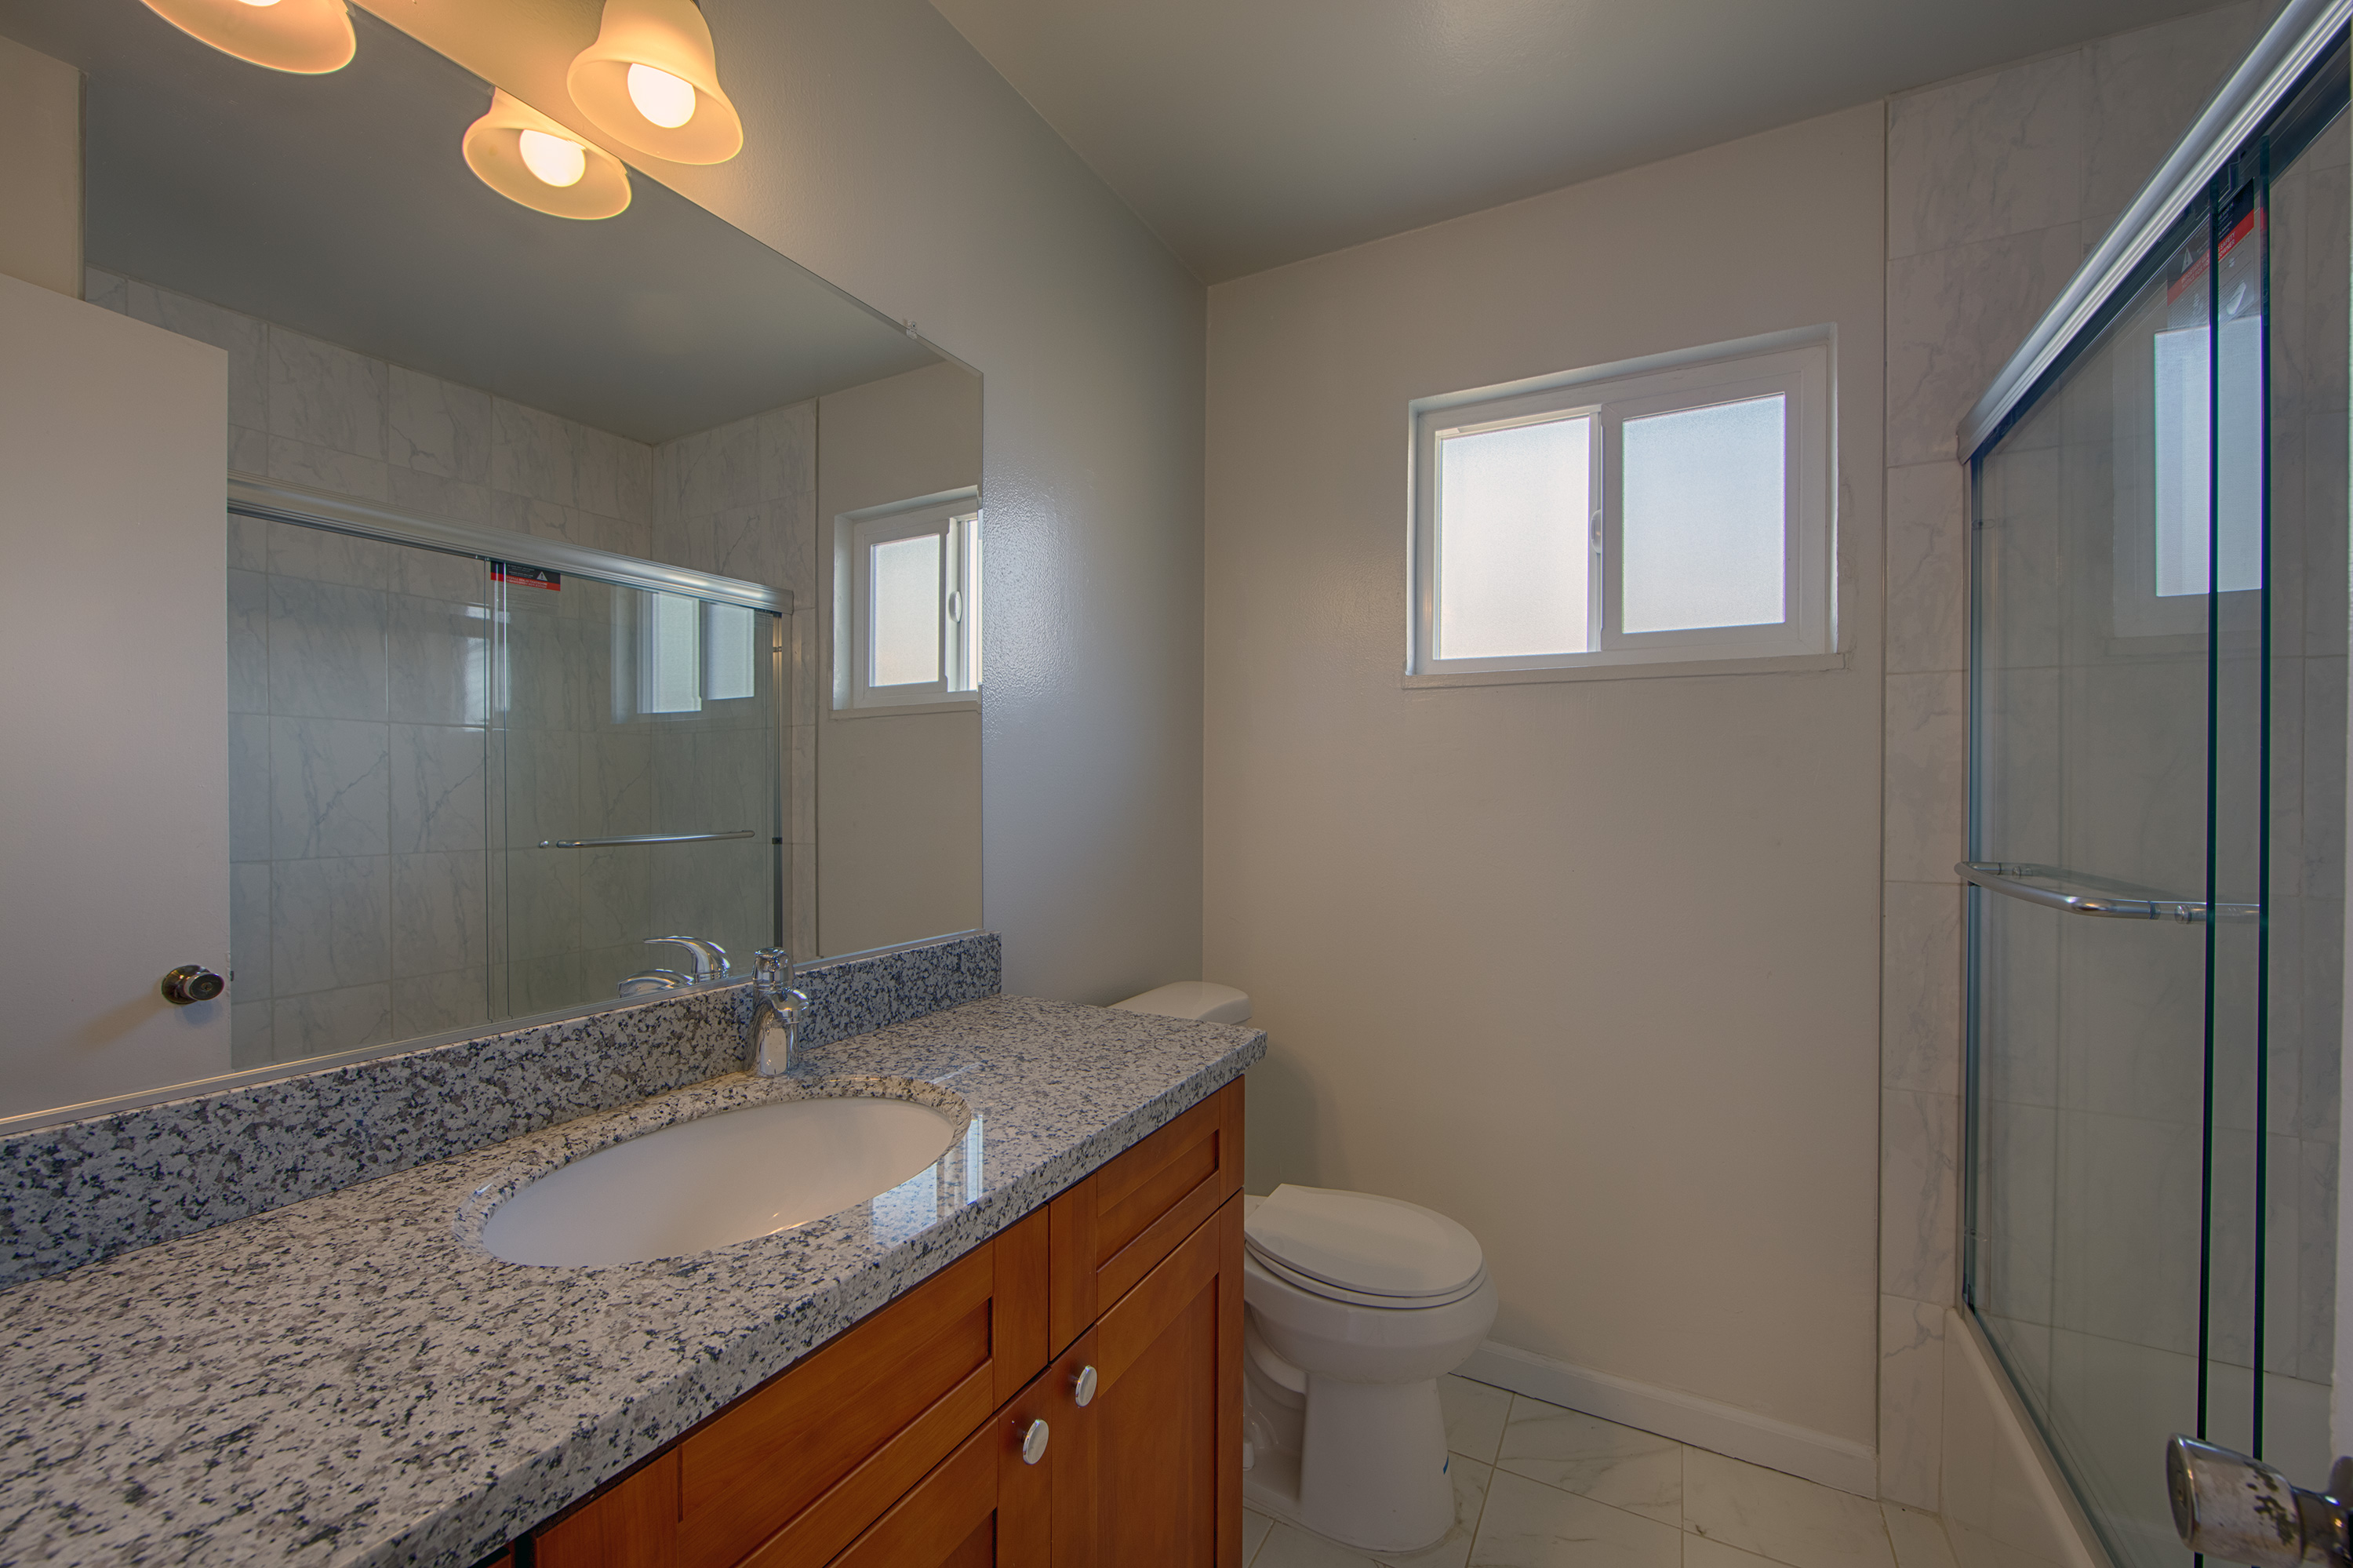 1662 Ontario Dr, Sunnyvale 94087 - Unit 3 Bathroom (A)